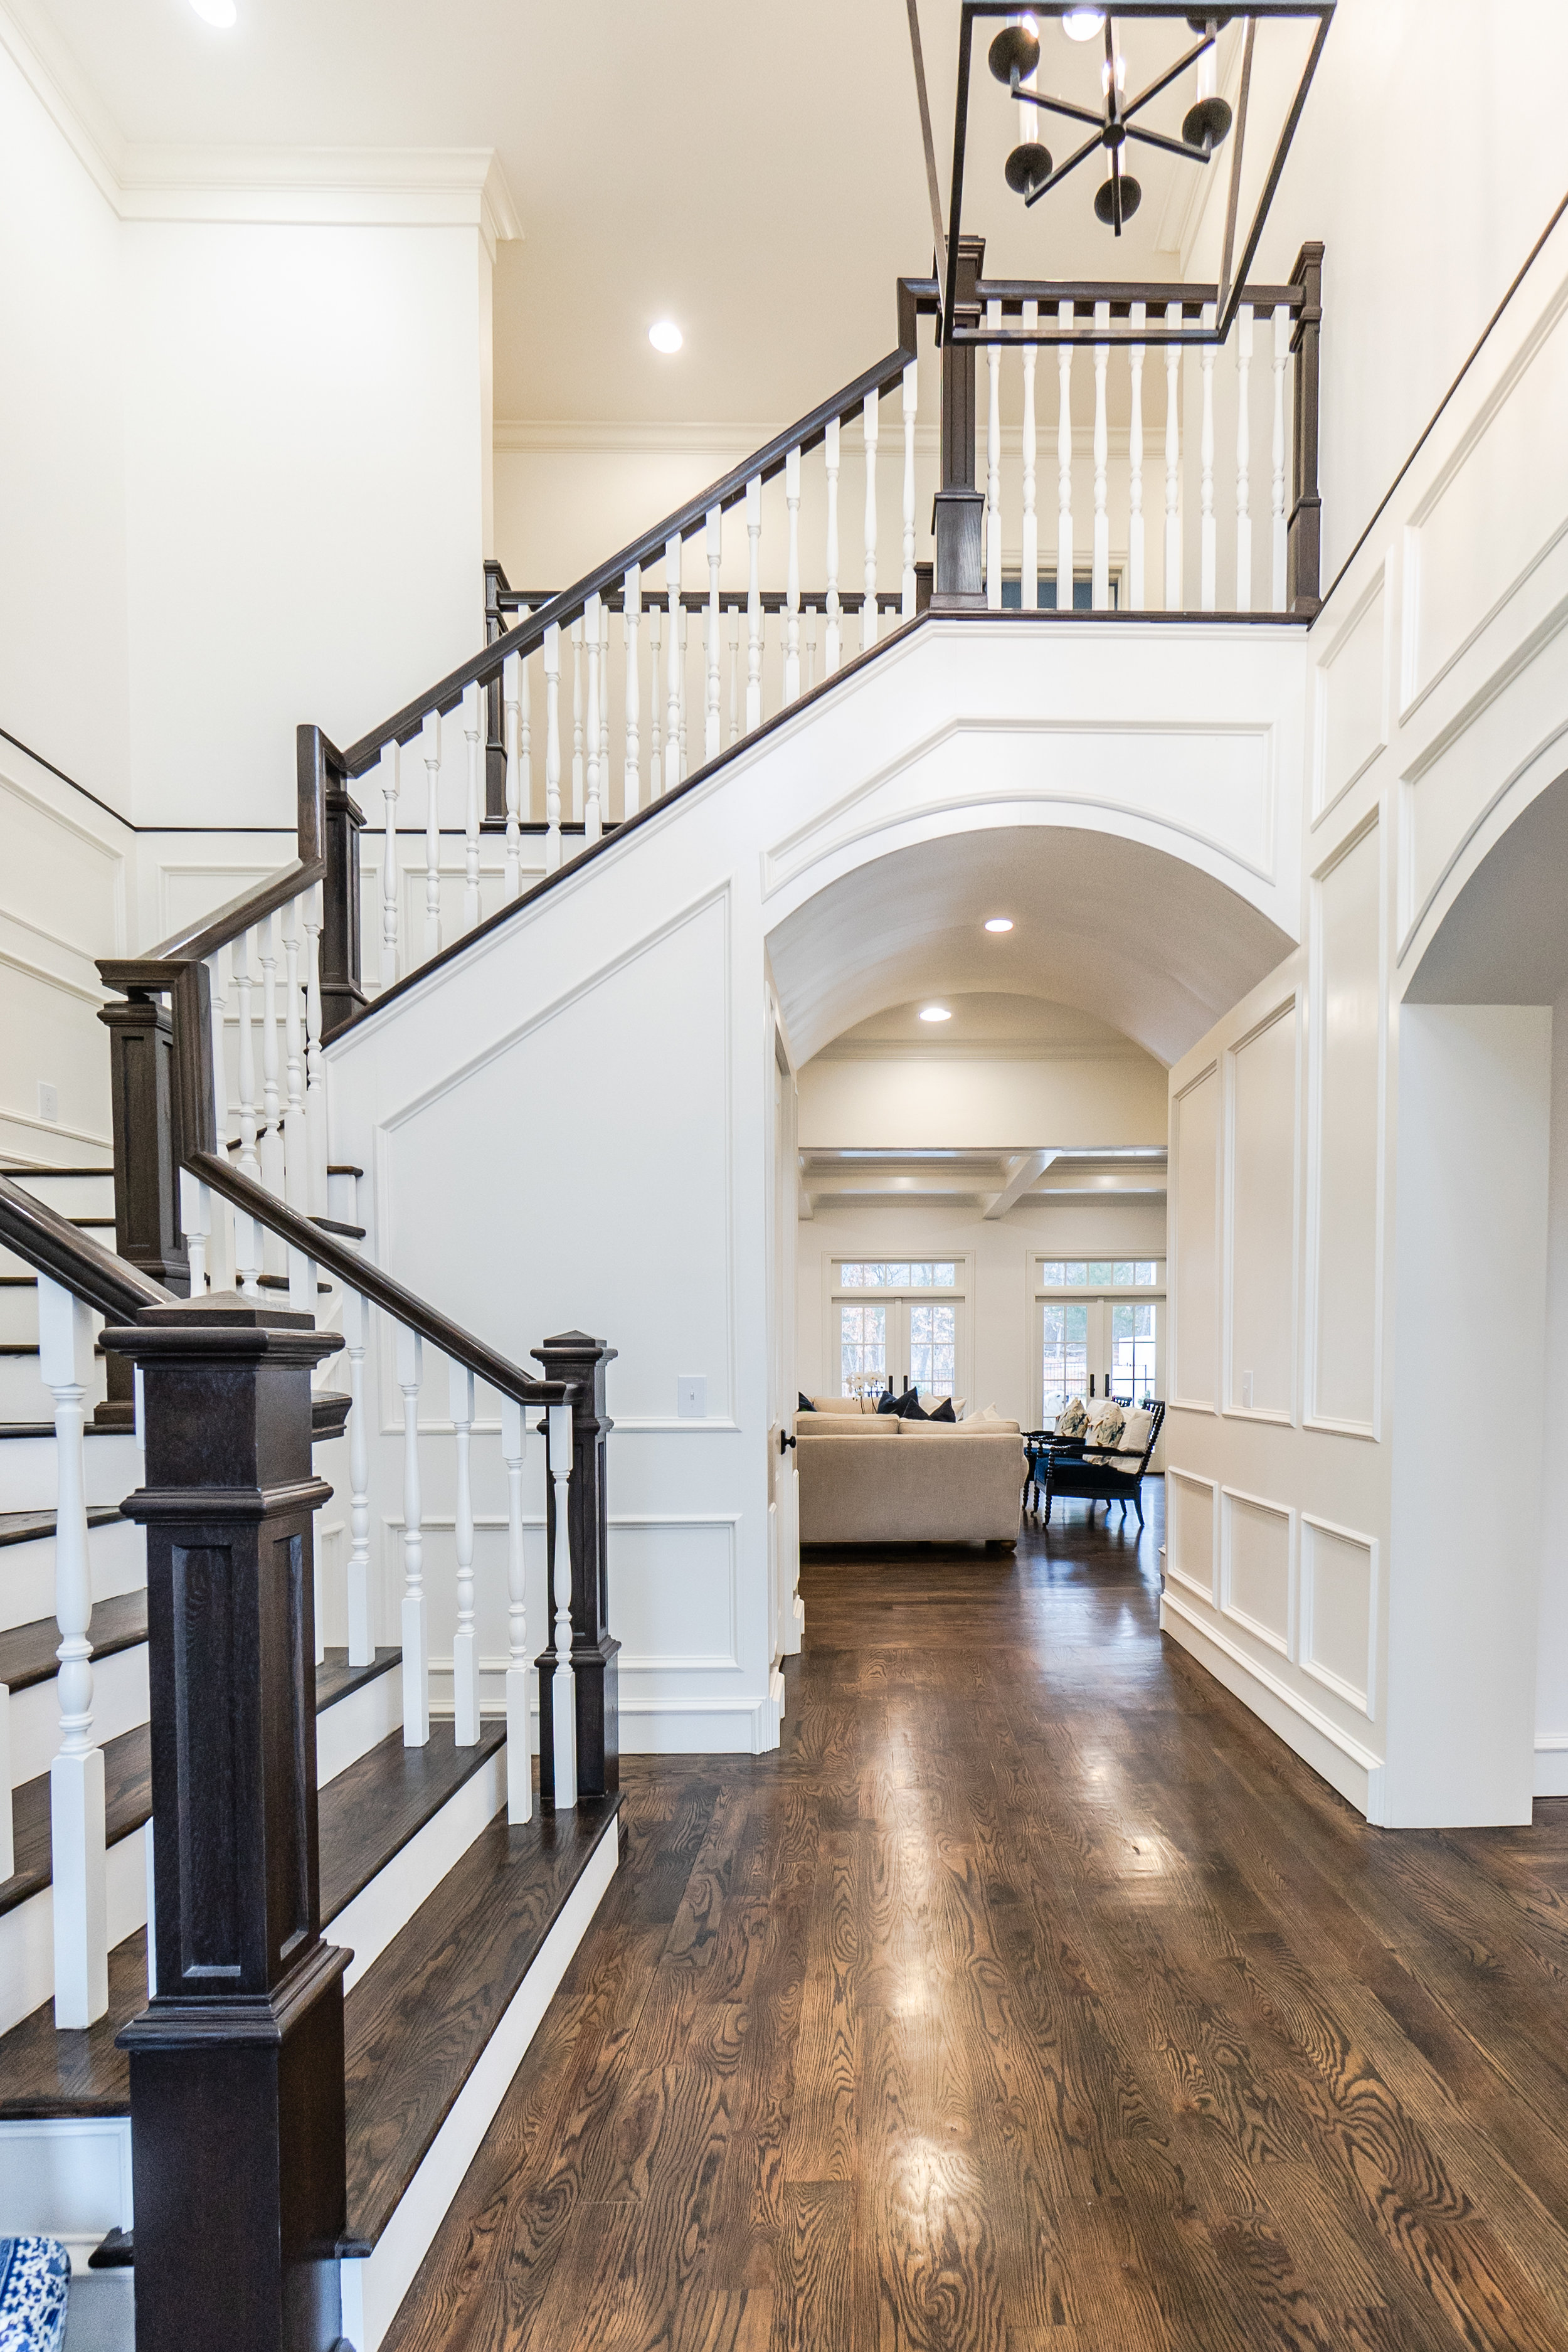 Exceptional two-story entry paneled to the second floor . . .  a GRAND entry!